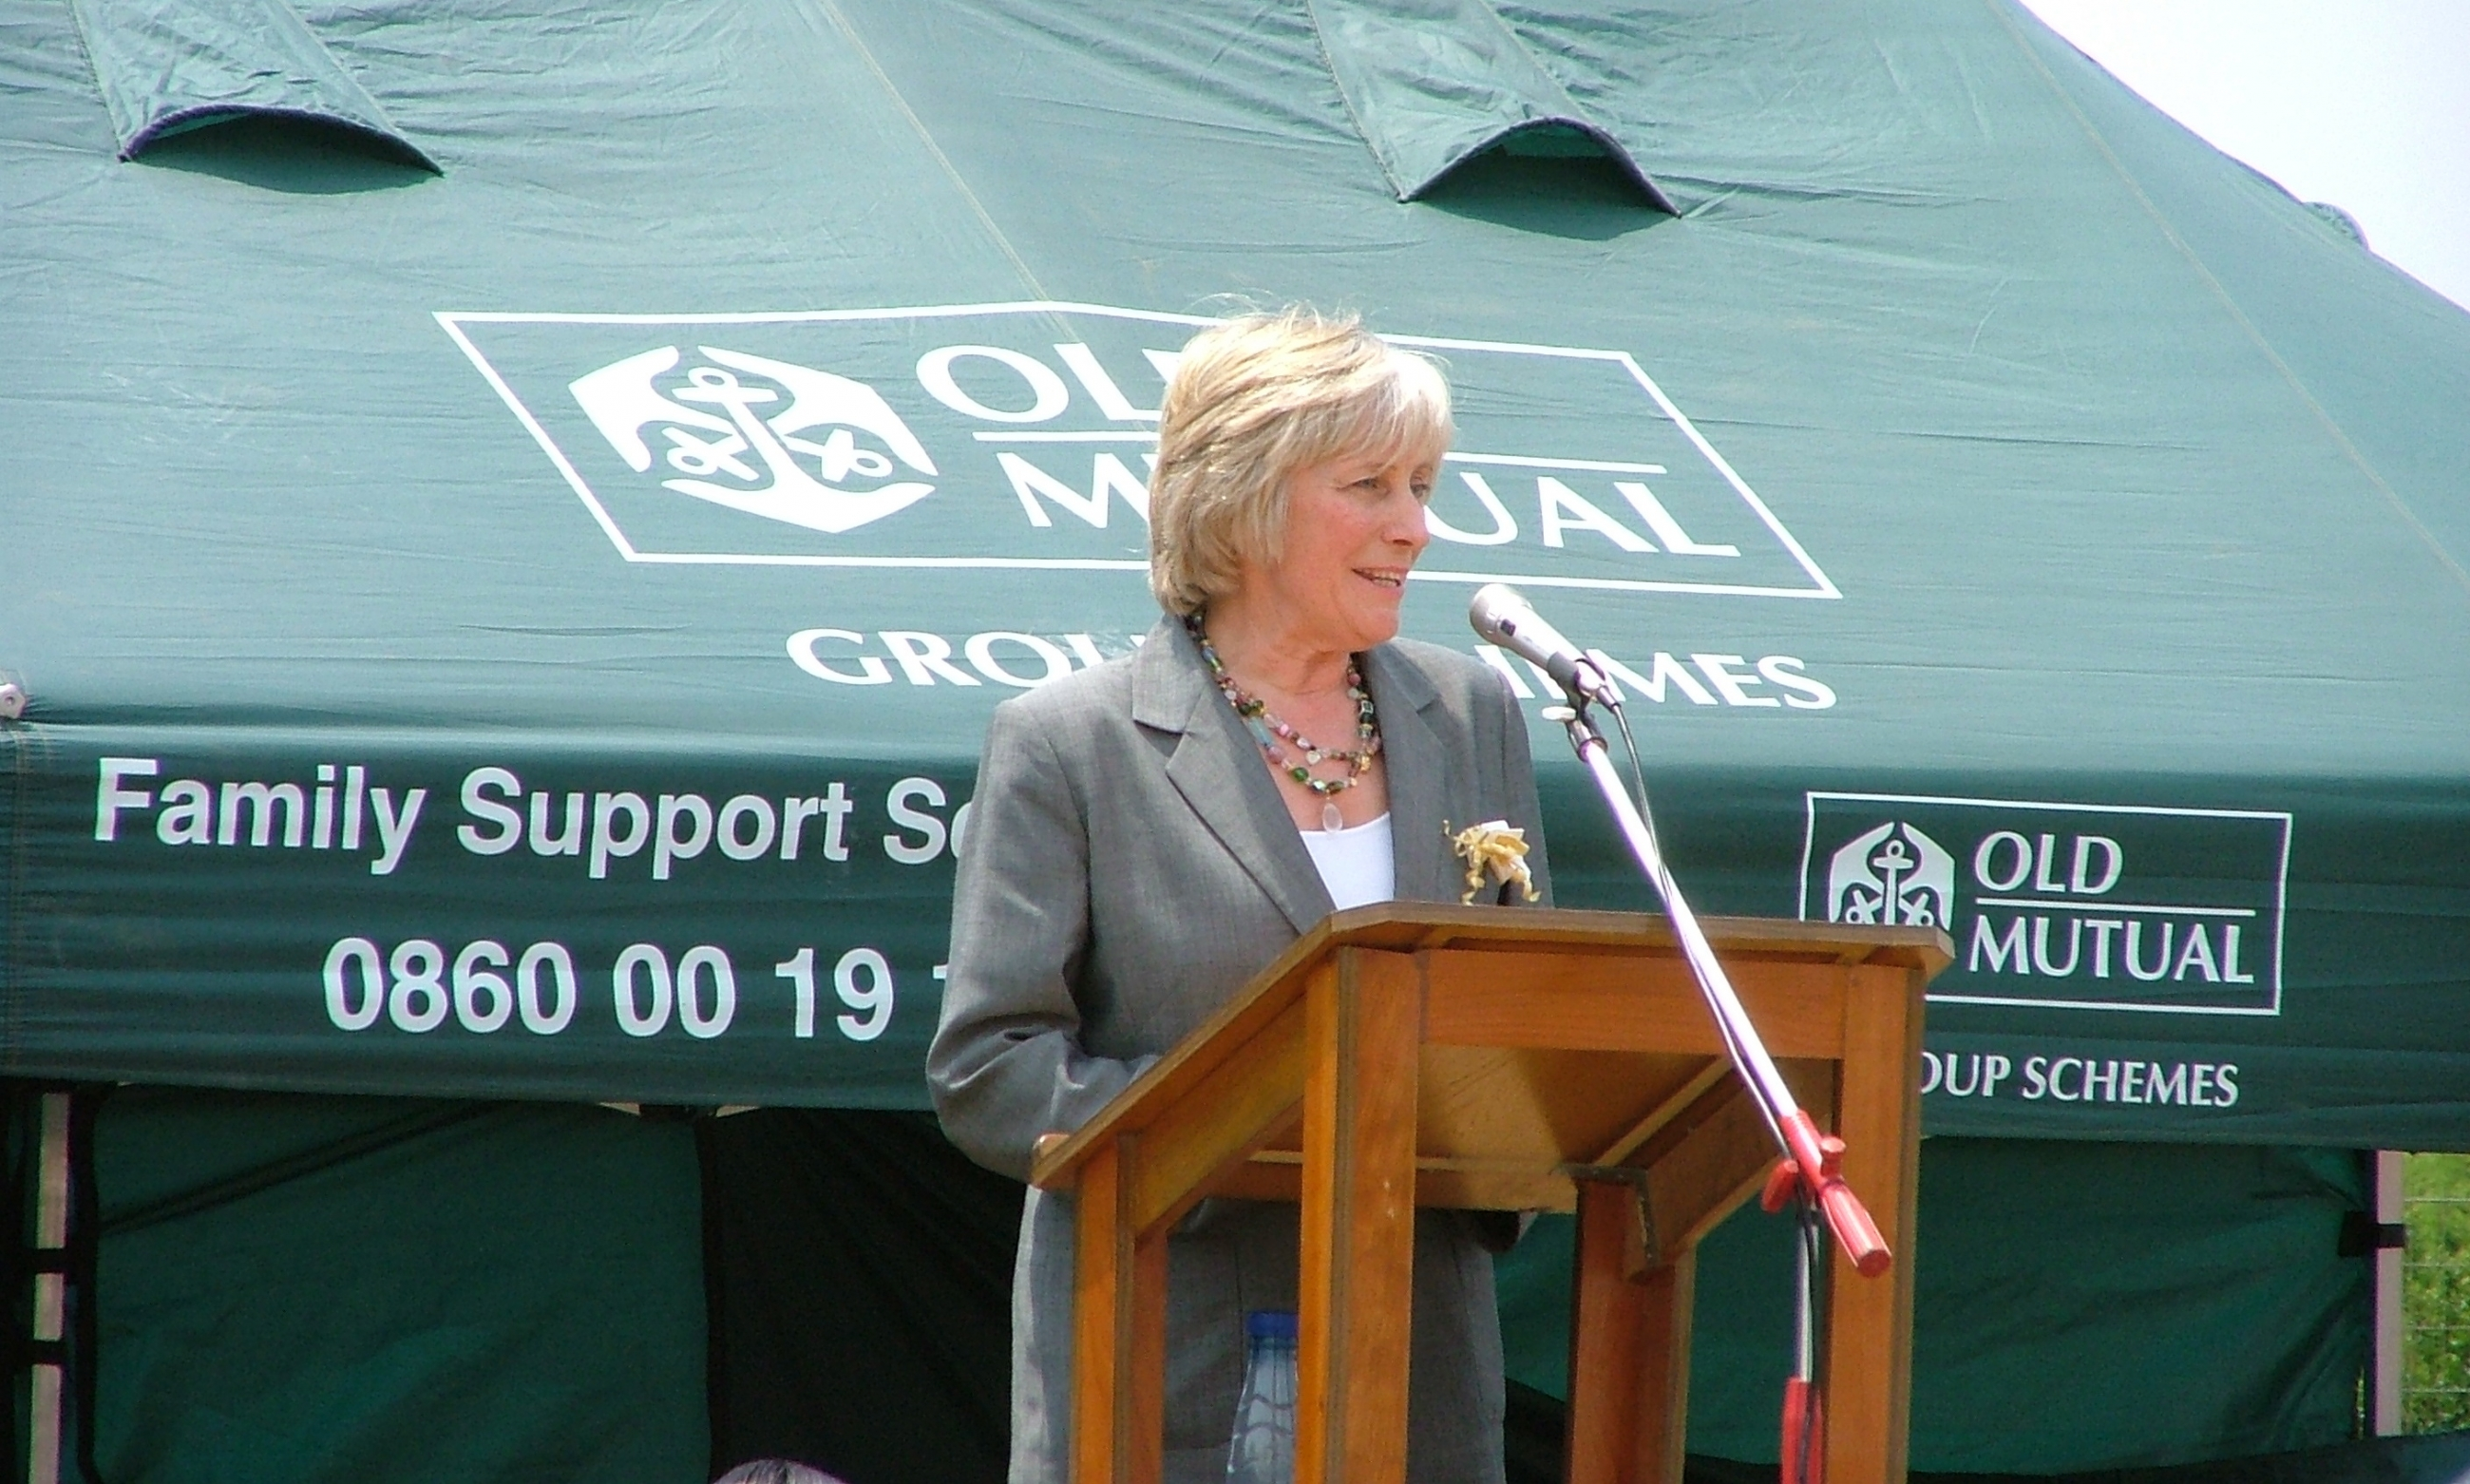 Janis Mowlam giving a speech in South Africa